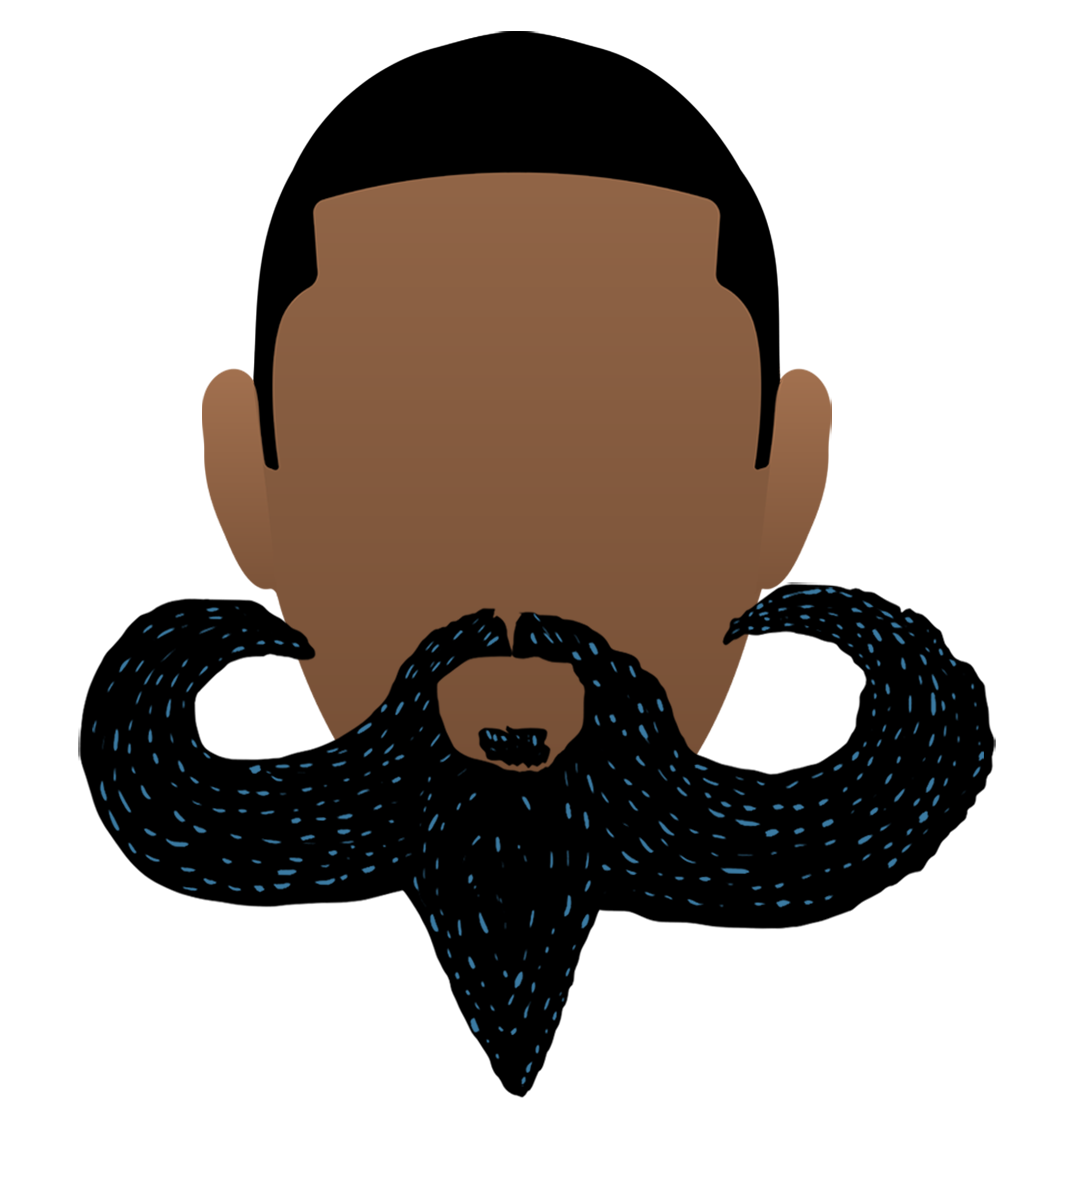 Moustache clipart fu manchu. How to shave off